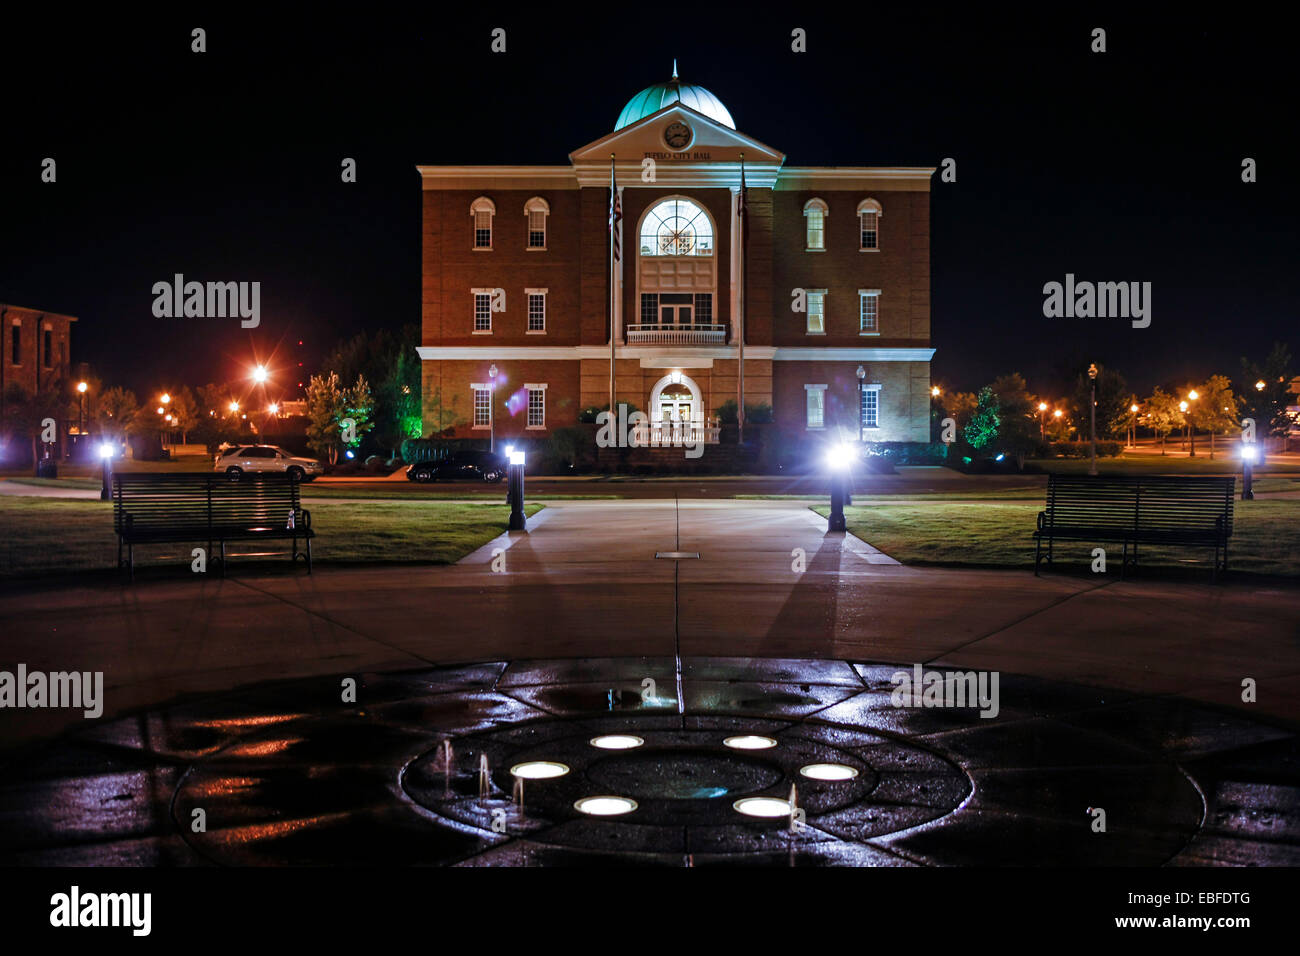 Tupelo City Hall building at night. Built on the site of the 1956 Mississippi-Alabama State Fair & Dairy Show - Stock Image